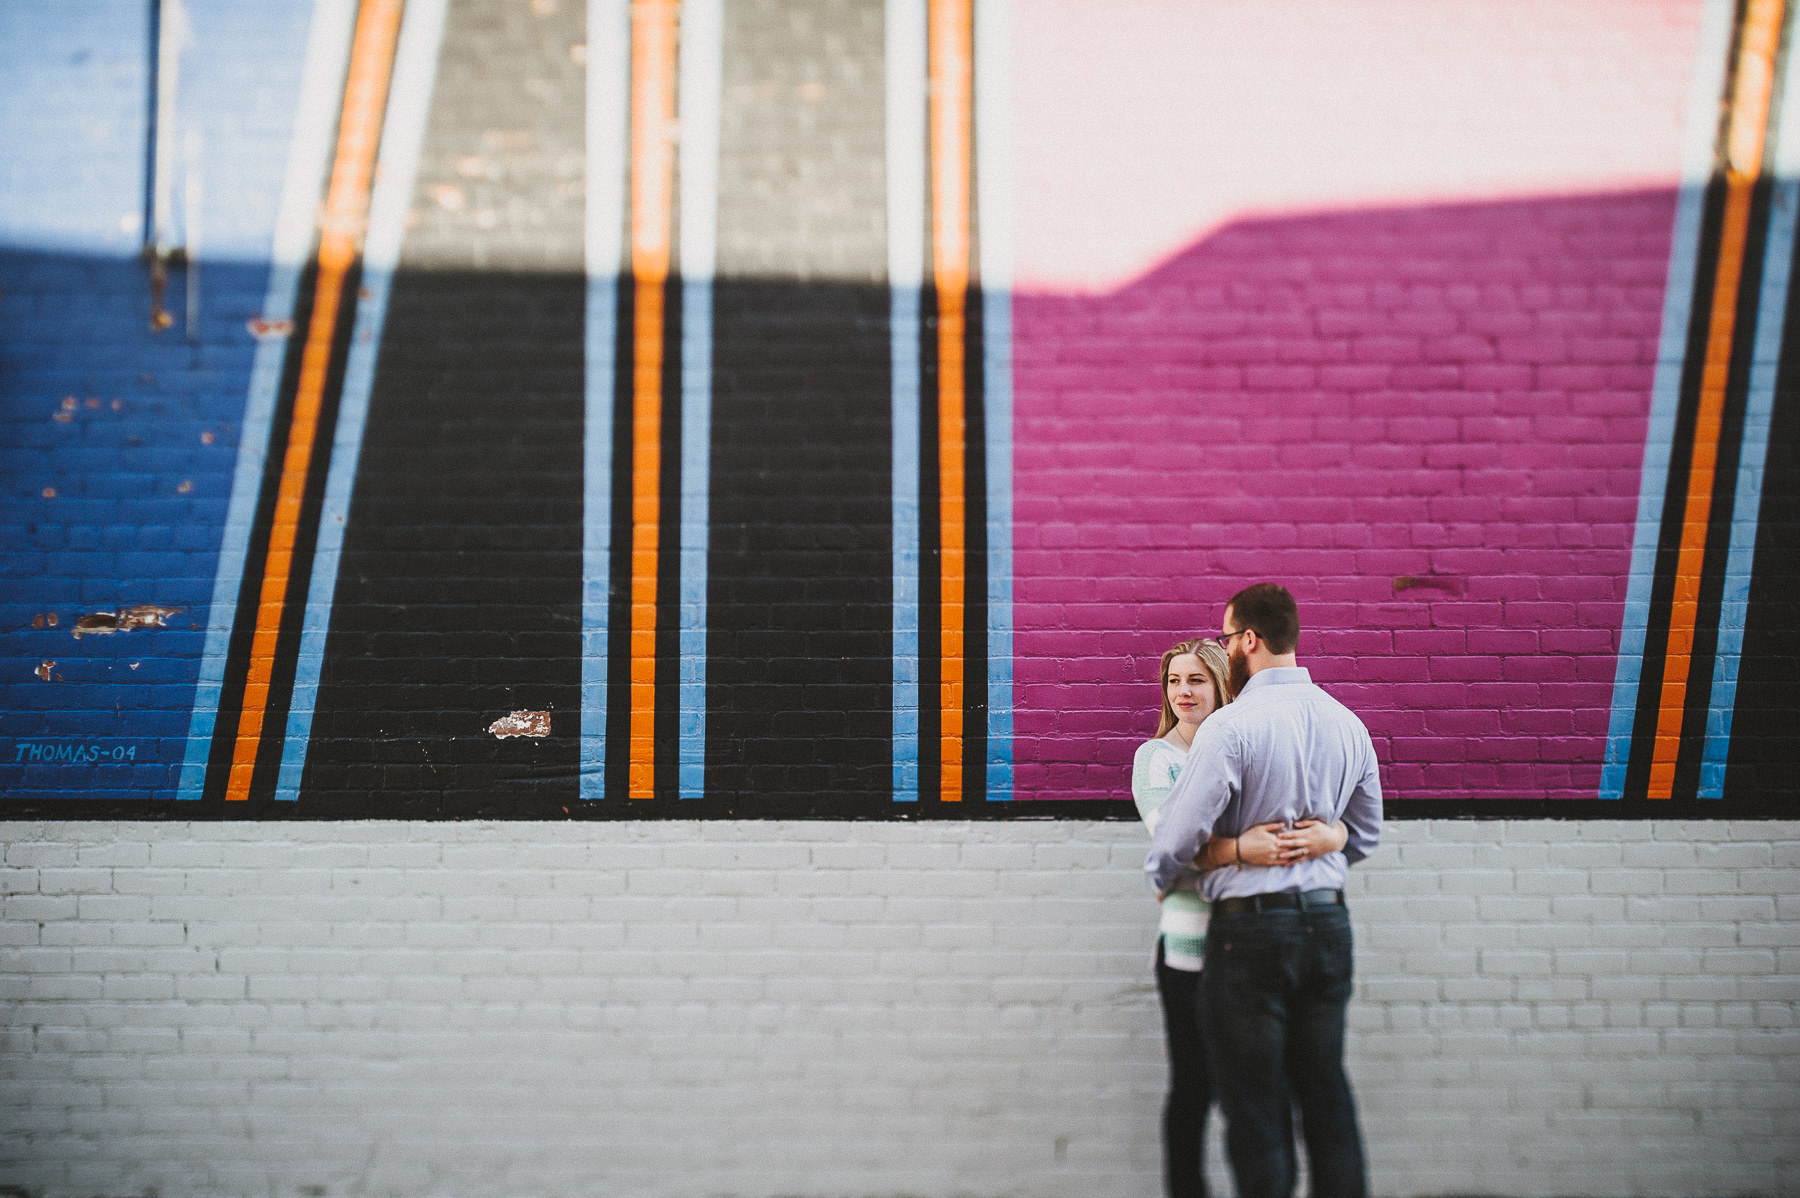 breighton-and-basette-photography-copyrighted-image-blog-kirsten-and-ryan-engagement-session-cover.jpg